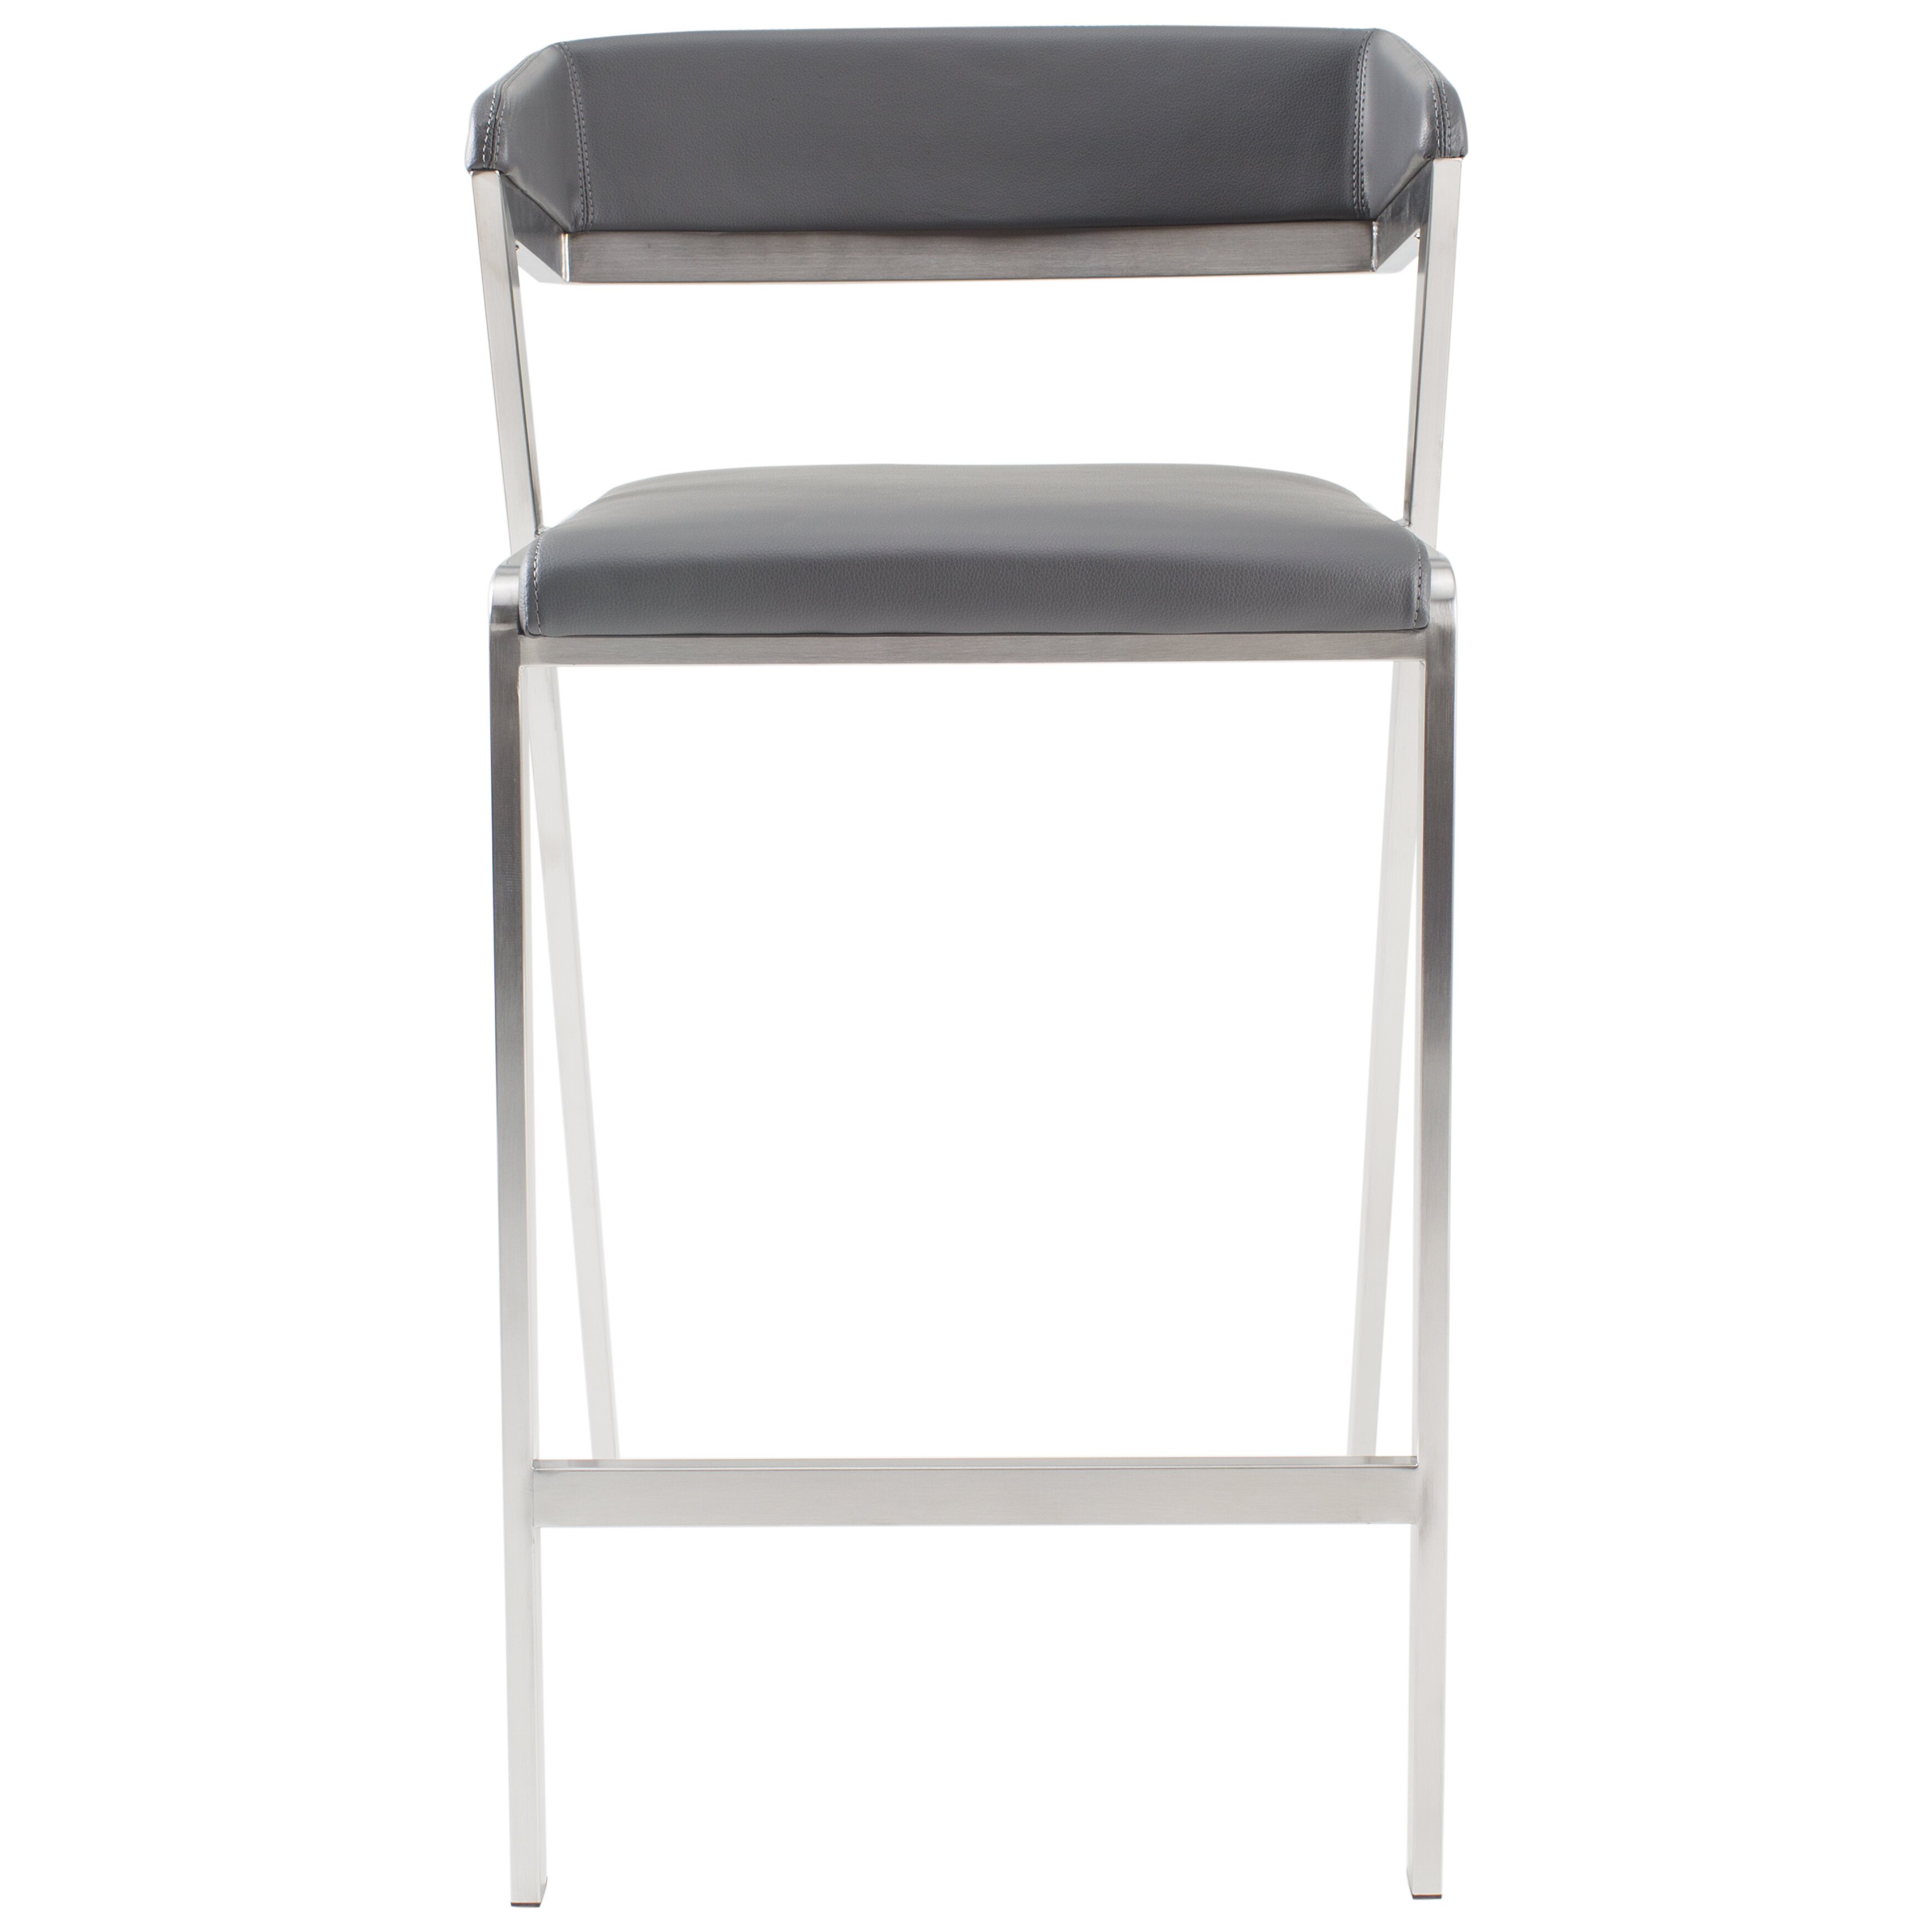 Surprising Deschamps Low Back 27 Bar Stool Evergreenethics Interior Chair Design Evergreenethicsorg